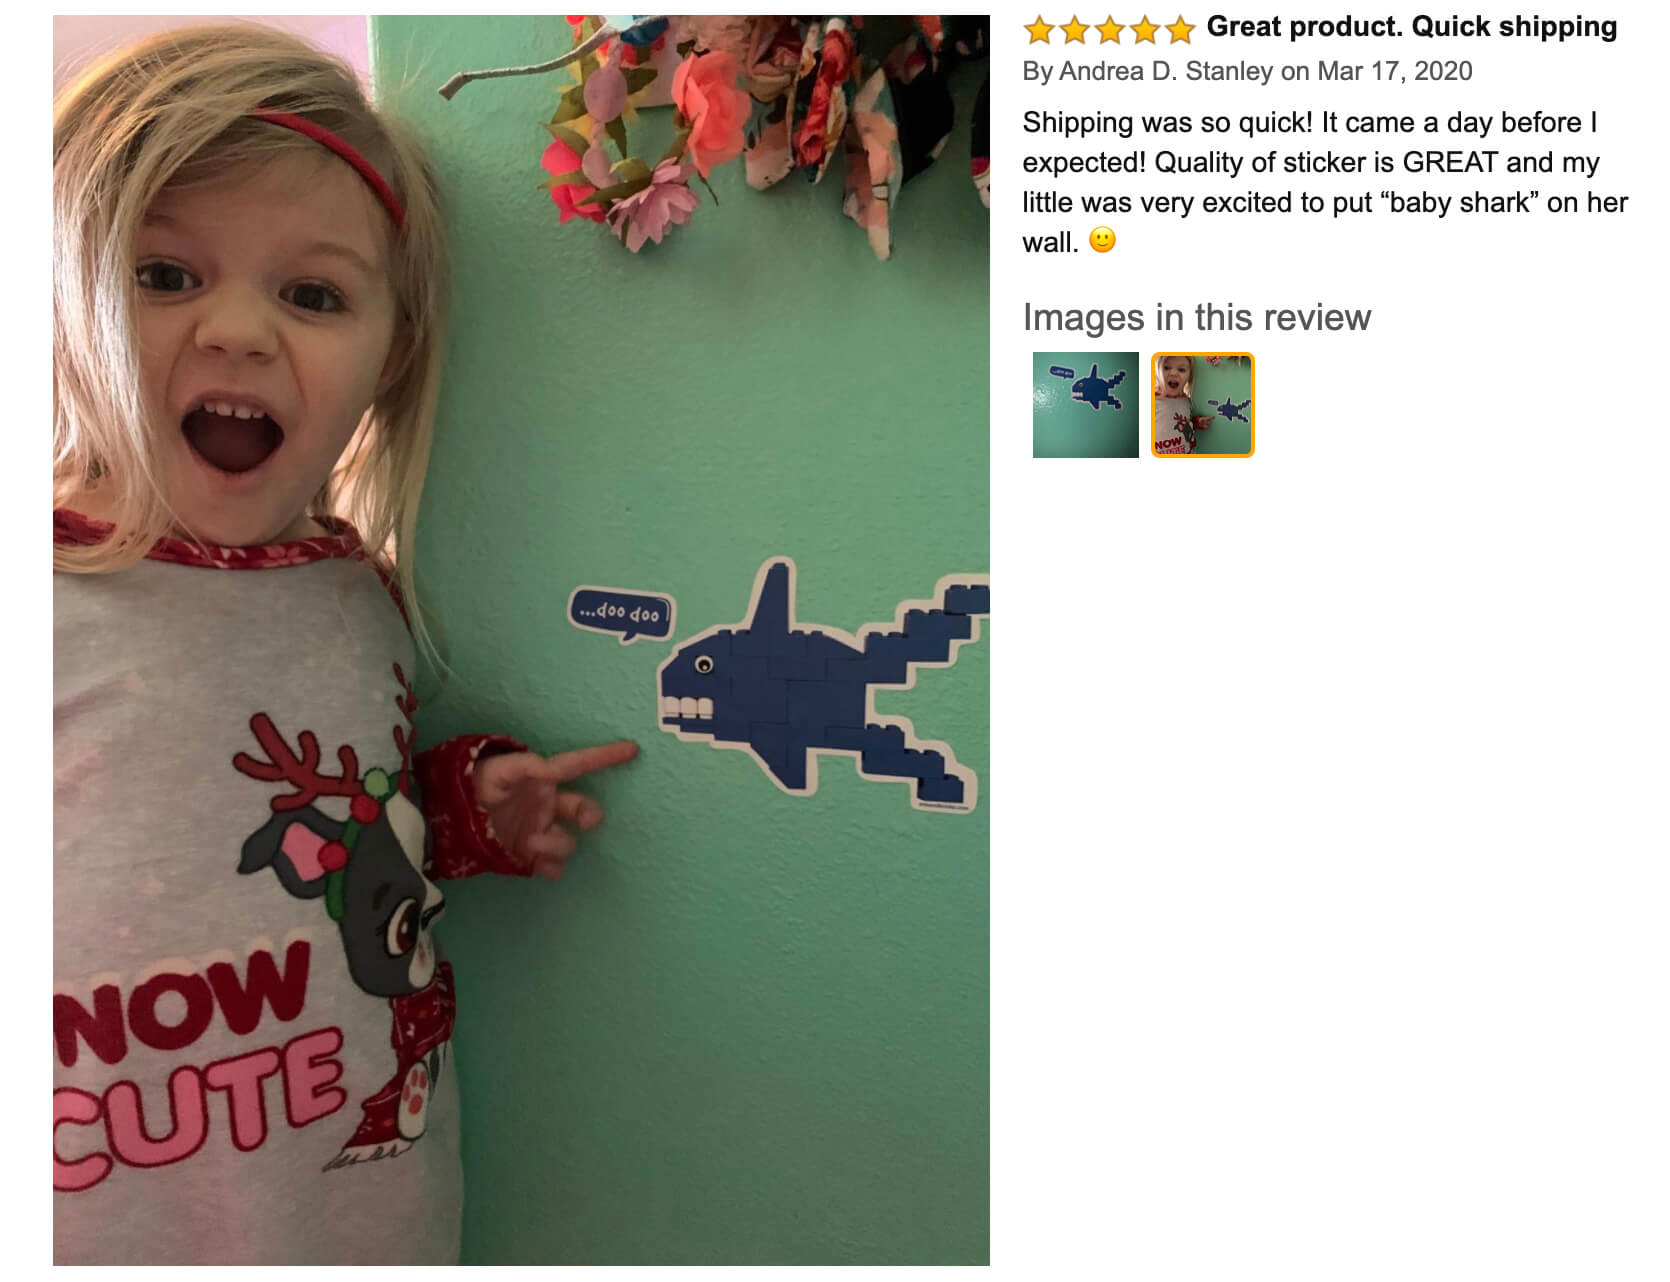 "Arts and Bricks's Brick-Built Shark Wall Sticker review on Amazon: ""Quality of sticker is GREAT and my little was very excited to put ""baby shark"" on her wall!"" #legoroom #legodecor #babyshark #legoshark #artsandbricks"